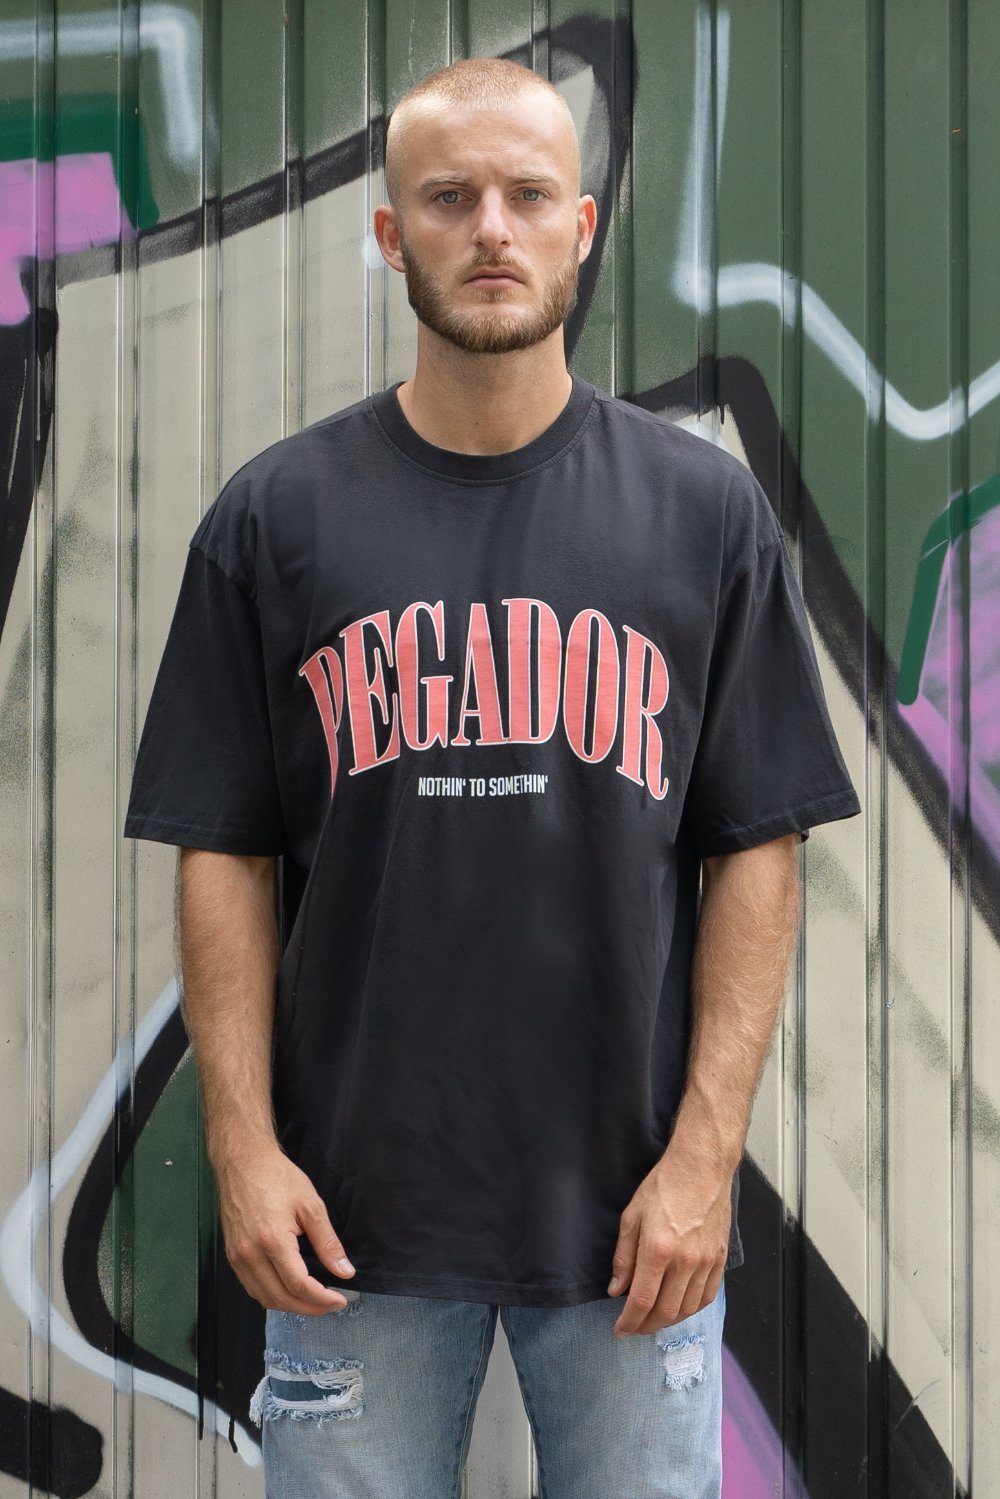 Cali Oversized Tee Washed Black Coral T-SHIRT PEGADOR